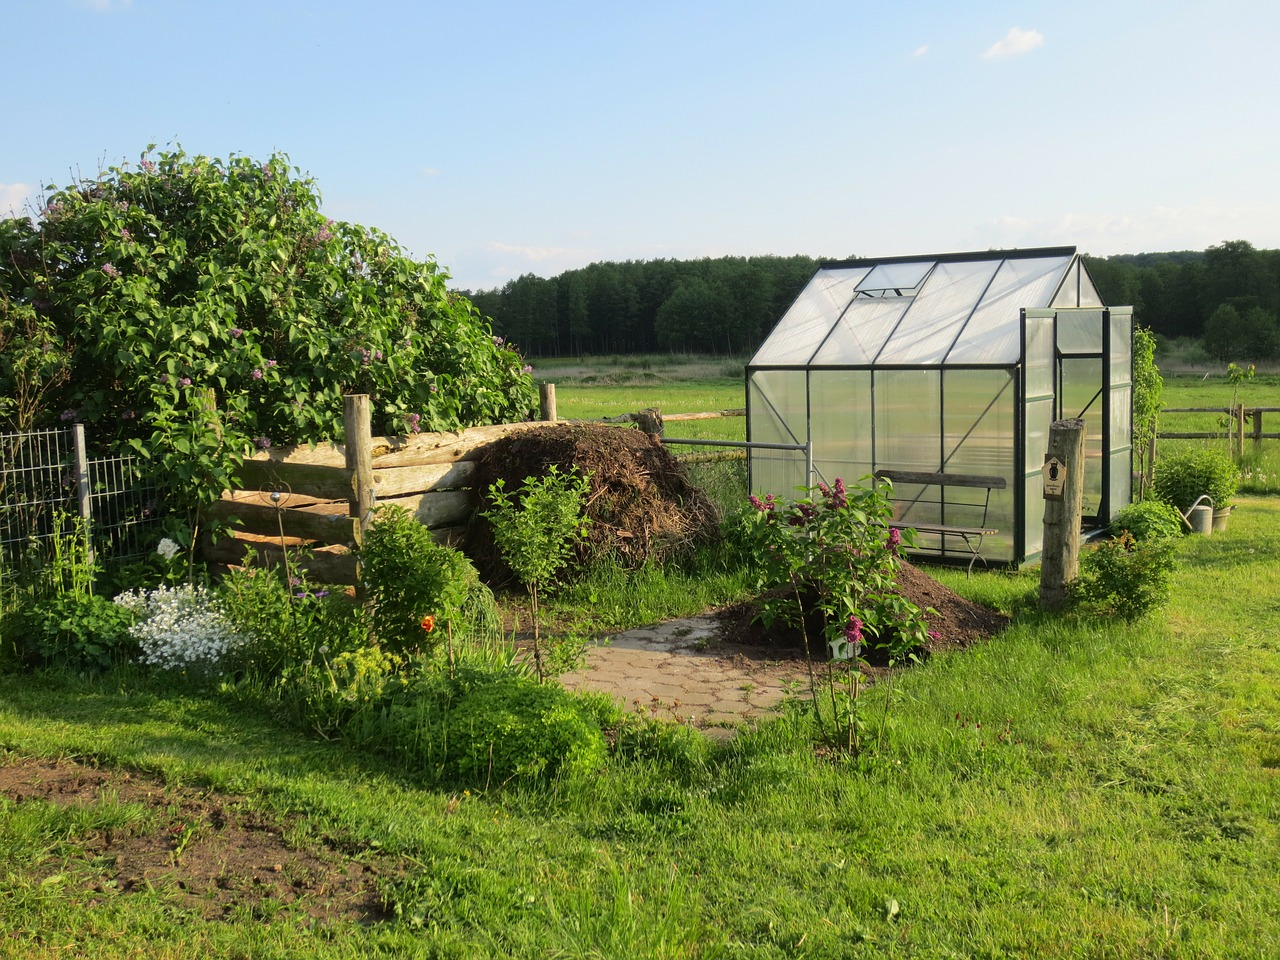 Greenhouse kits are the ideal solution for beginners wanting to build one of these structures. (Image: pixabay / CC0 1.0)